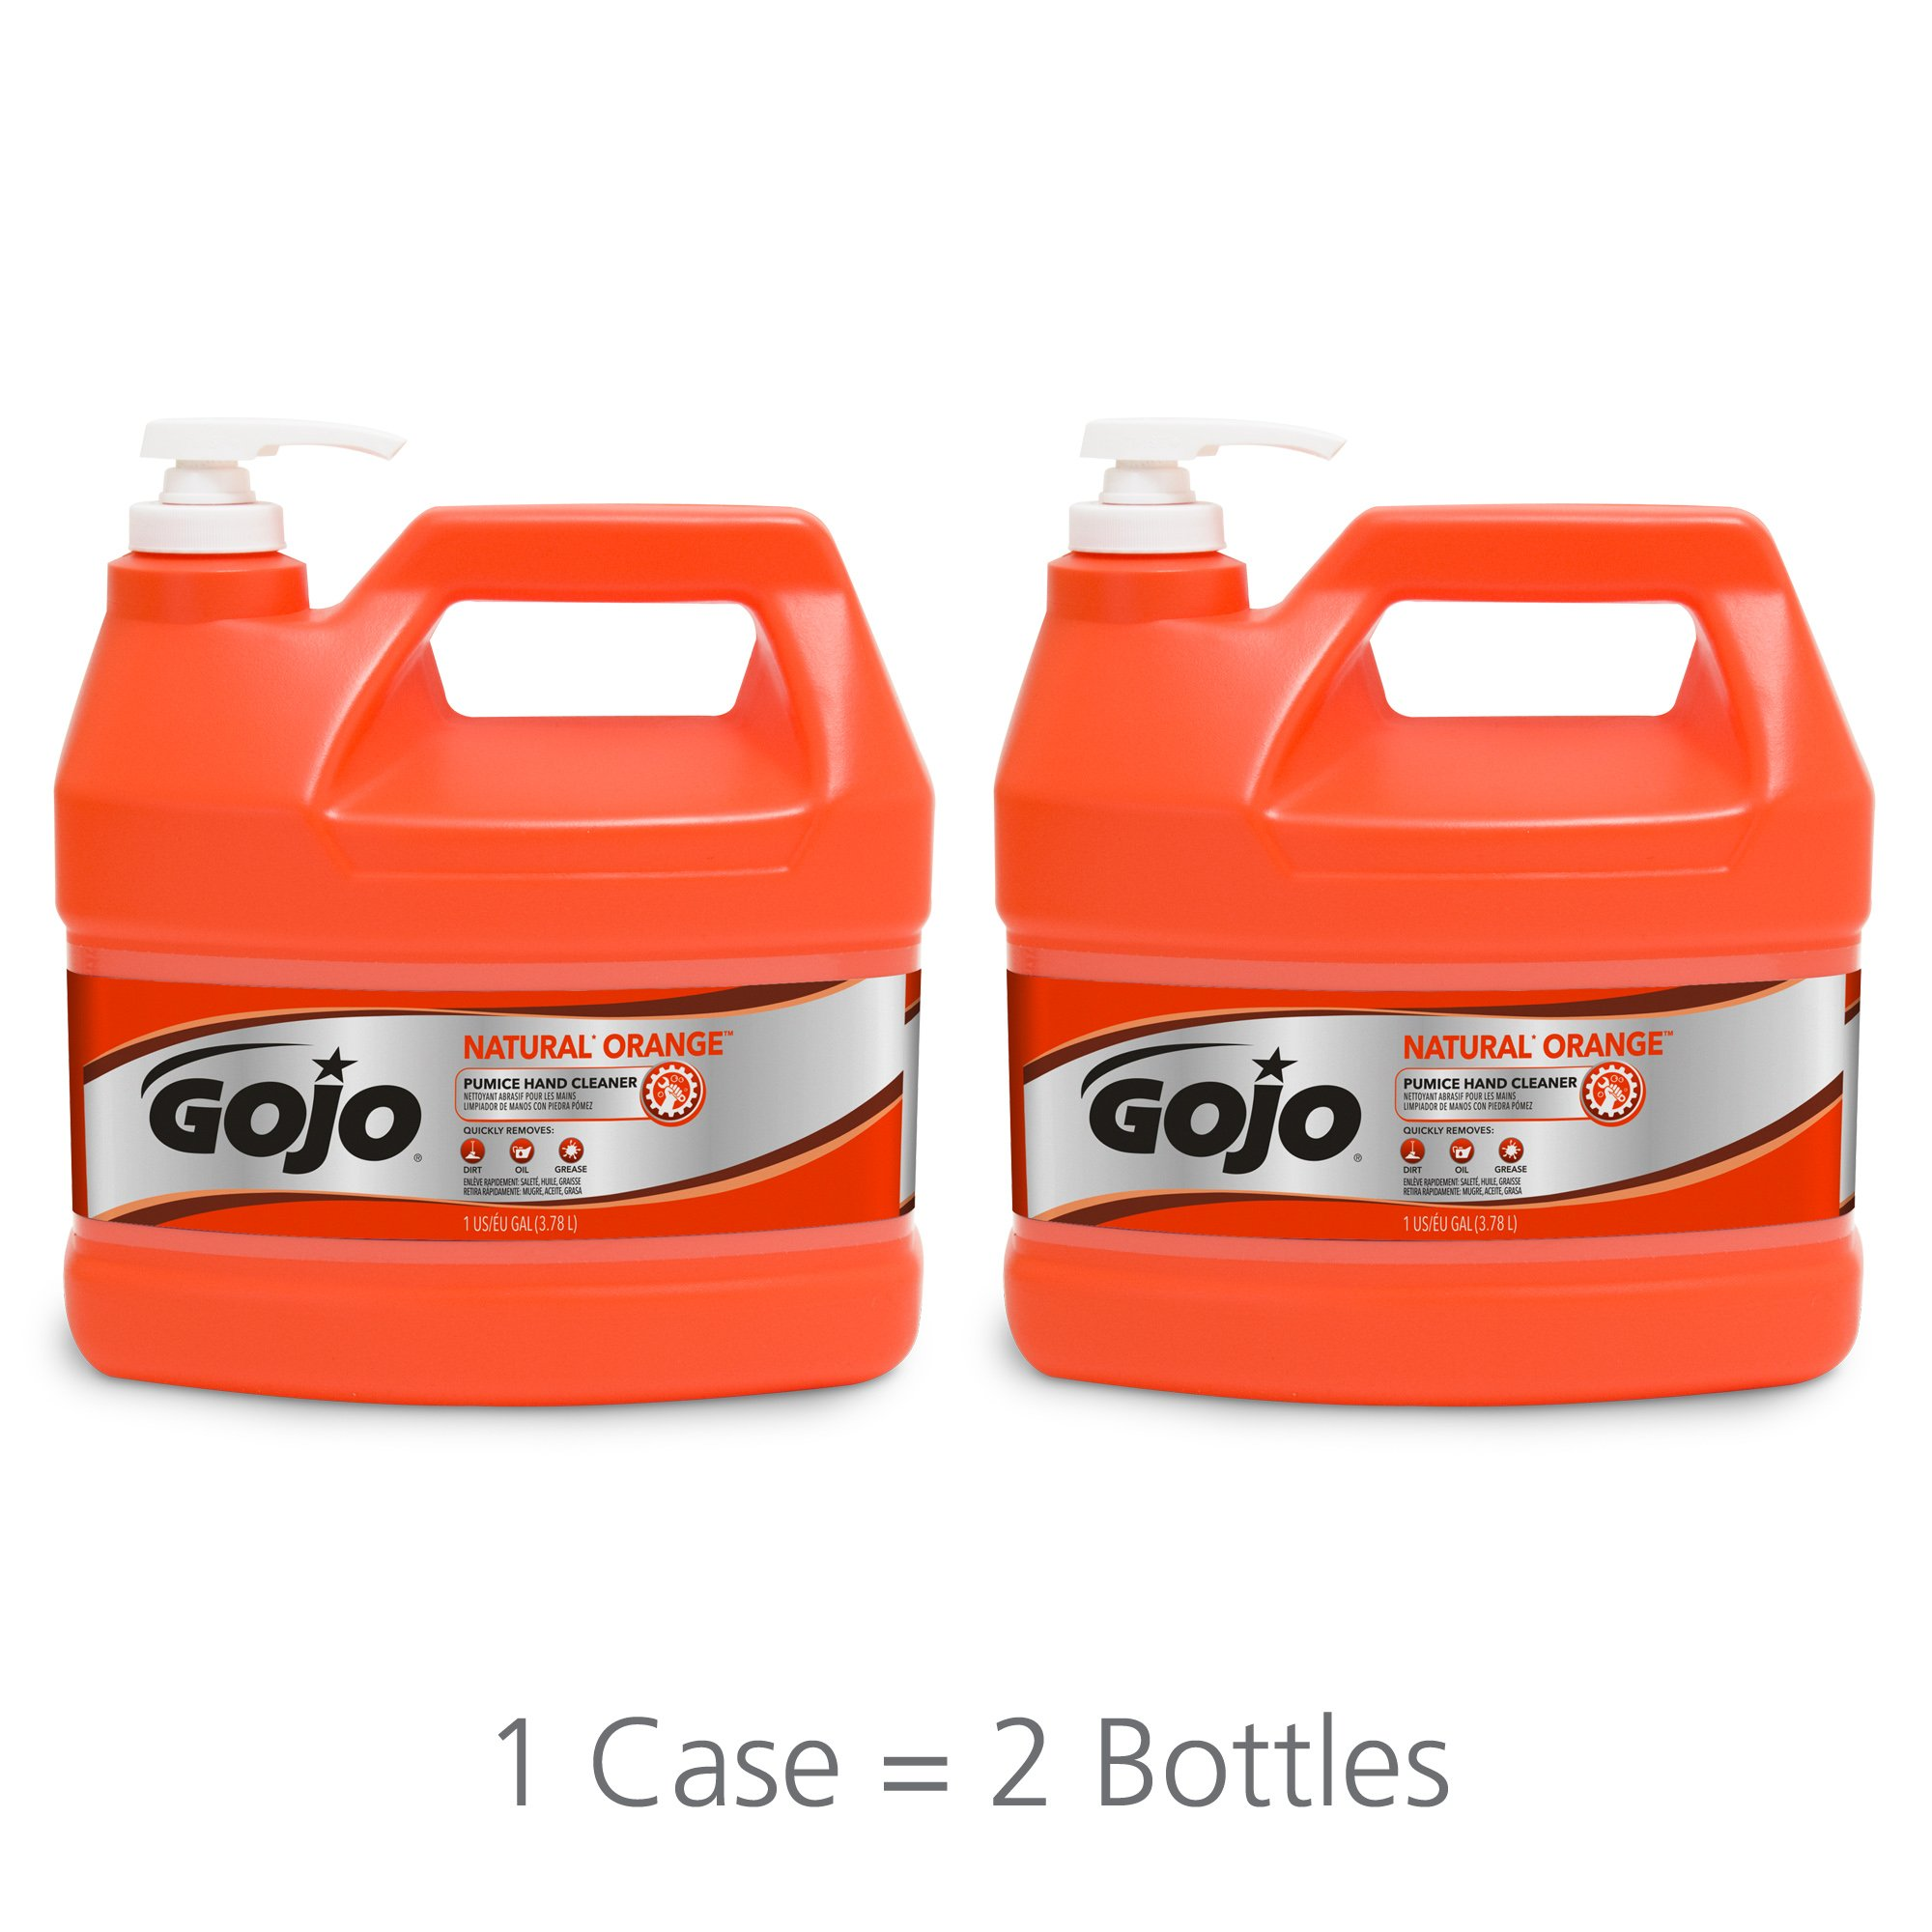 GOJO NATURAL ORANGE Pumice Industrial Hand Cleaner, 1 Gallon Quick Acting Lotion Hand Cleaner with Pumice Pump Bottle (Pack of 2) - 0955-02 by Gojo